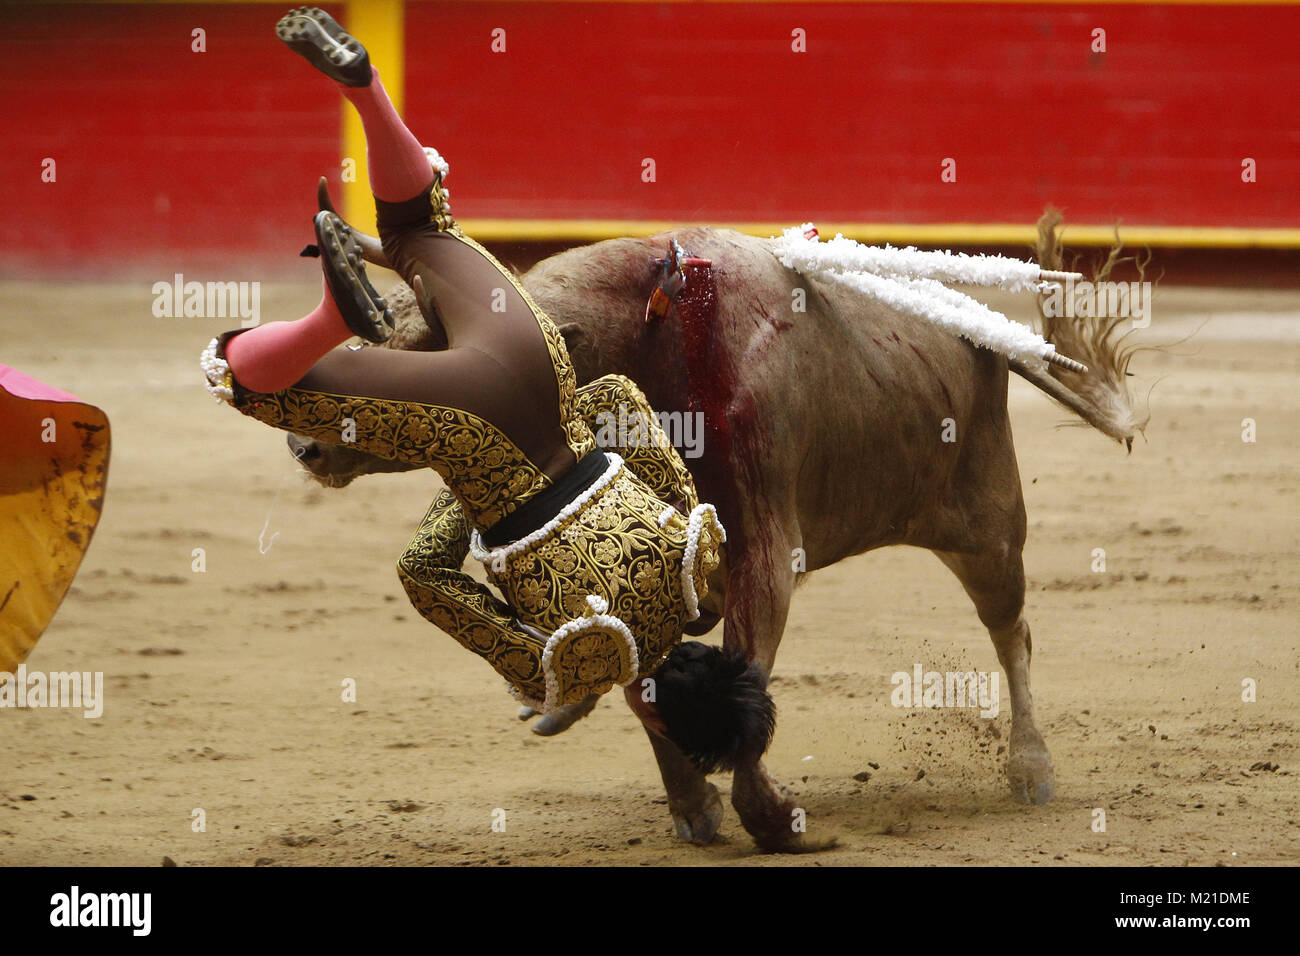 Medellin, Colombia. 3rd Feb, 2018. Colombian bullfighter David Martinez gets gored during the second bullfight of - Stock Image